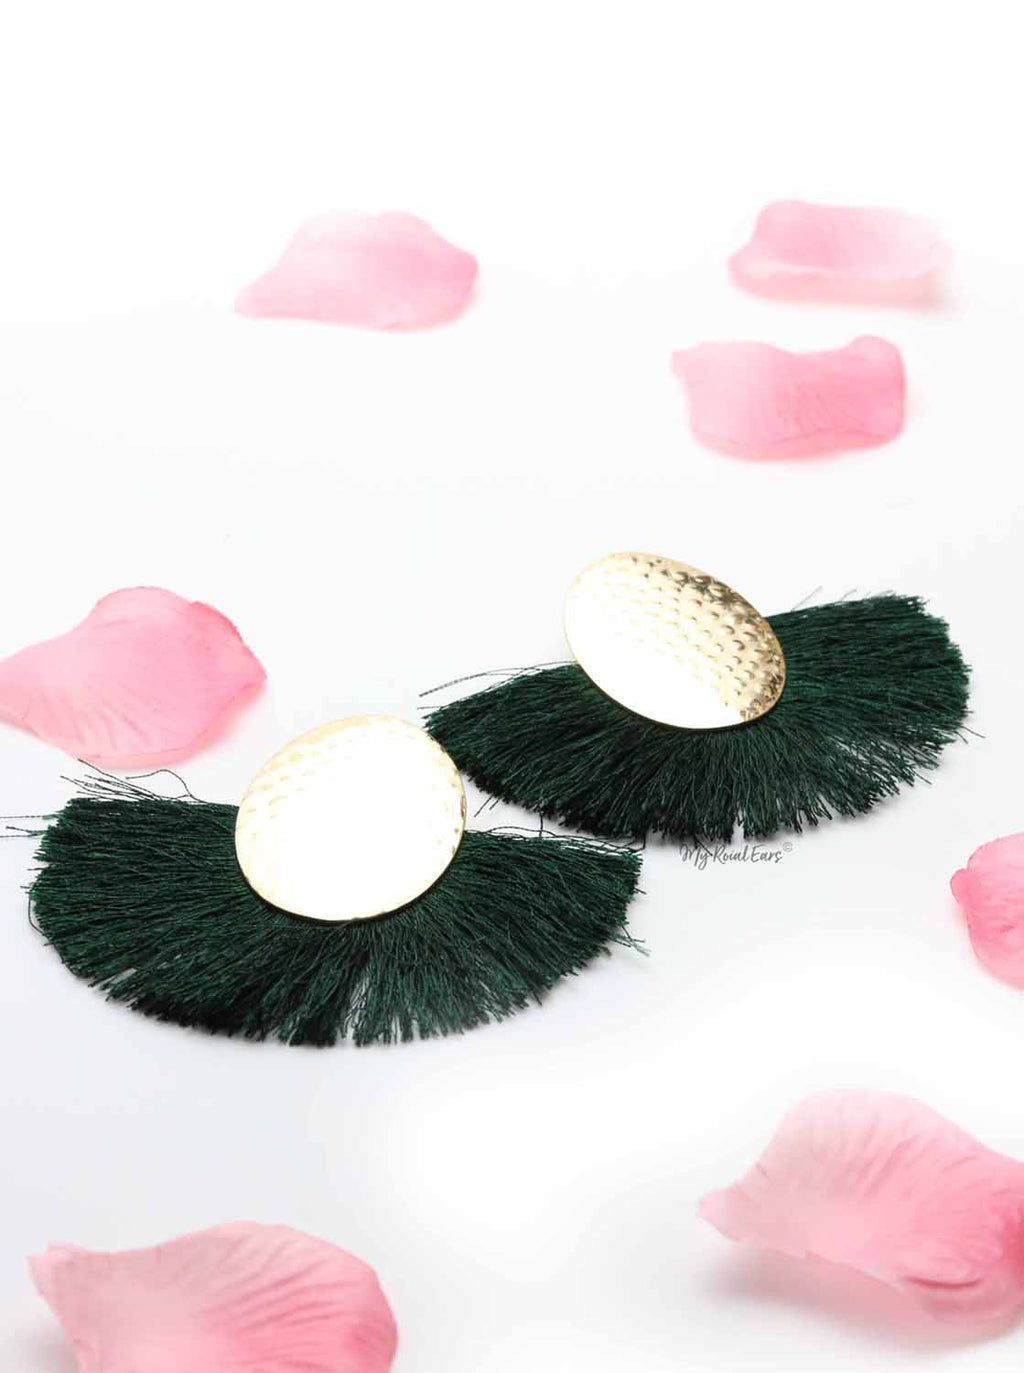 Blue Passion Green- golden egg shaped tassel earrings - My Roial Ears LTD